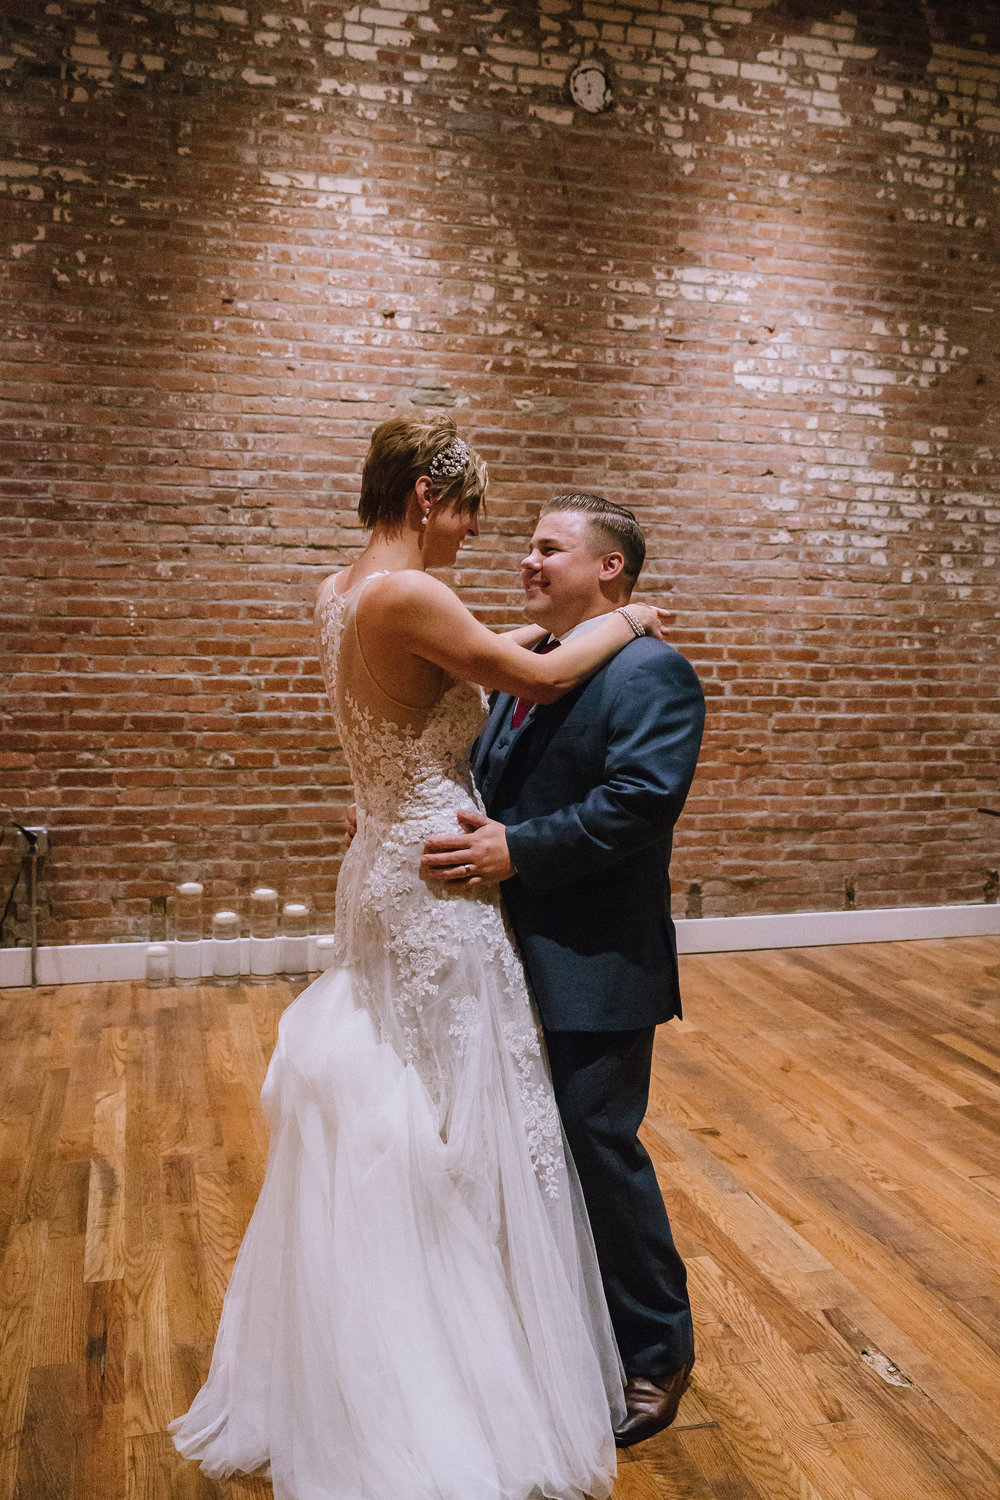 Bride and groom share first dance at Pittsburgh wedding at Studio Slate planned by Exhale Events. Find more wedding inspiration at exhale-events.com!